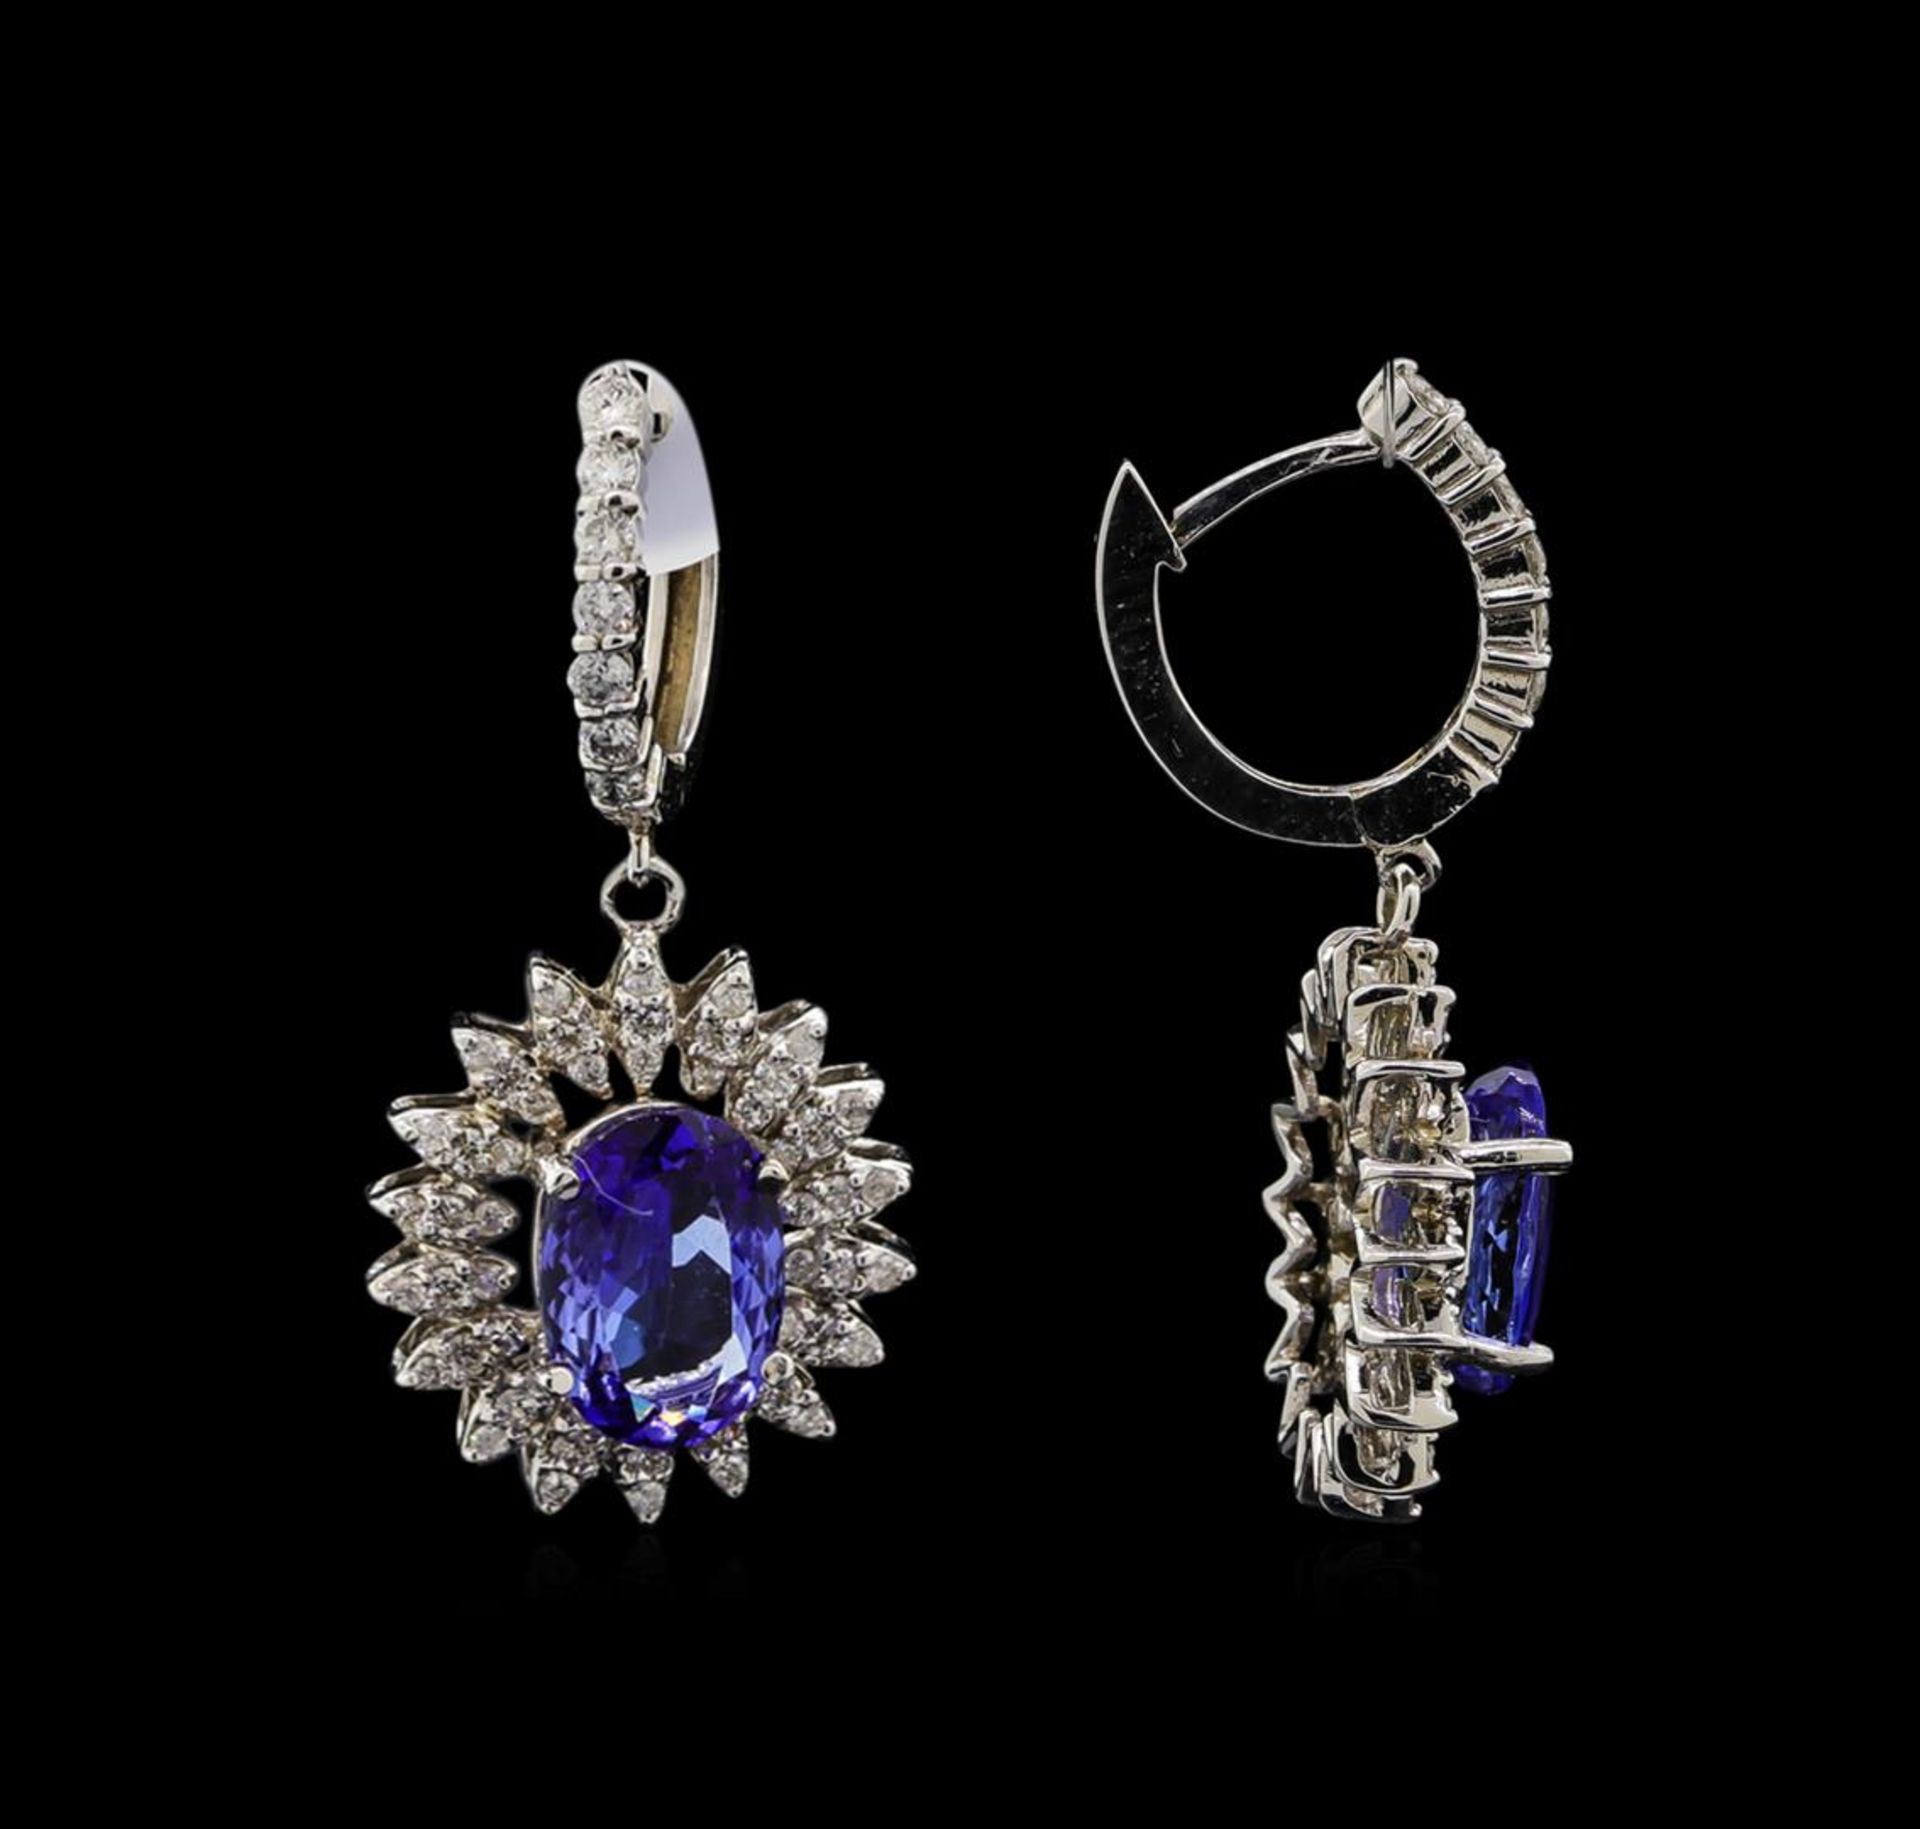 14KT White Gold 4.08 ctw Tanzanite and Diamond Earrings - Image 2 of 3